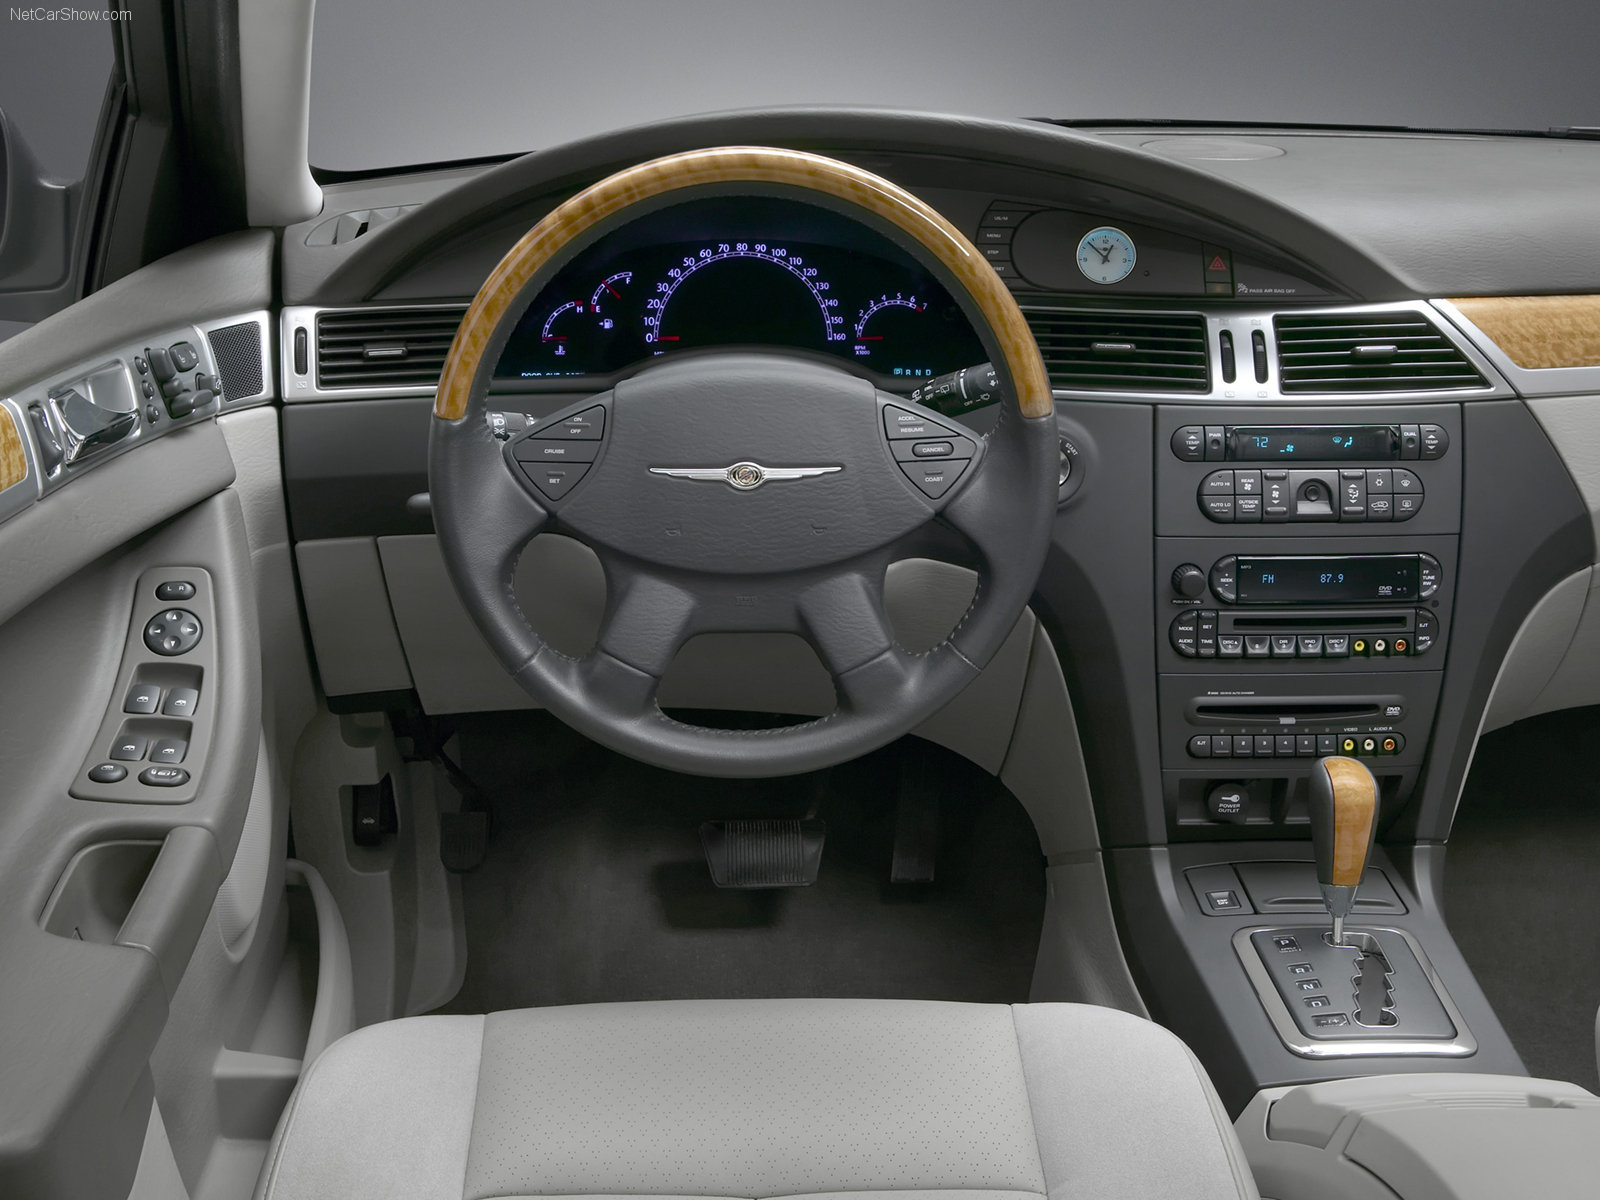 2007 chrysler pacifica image 14